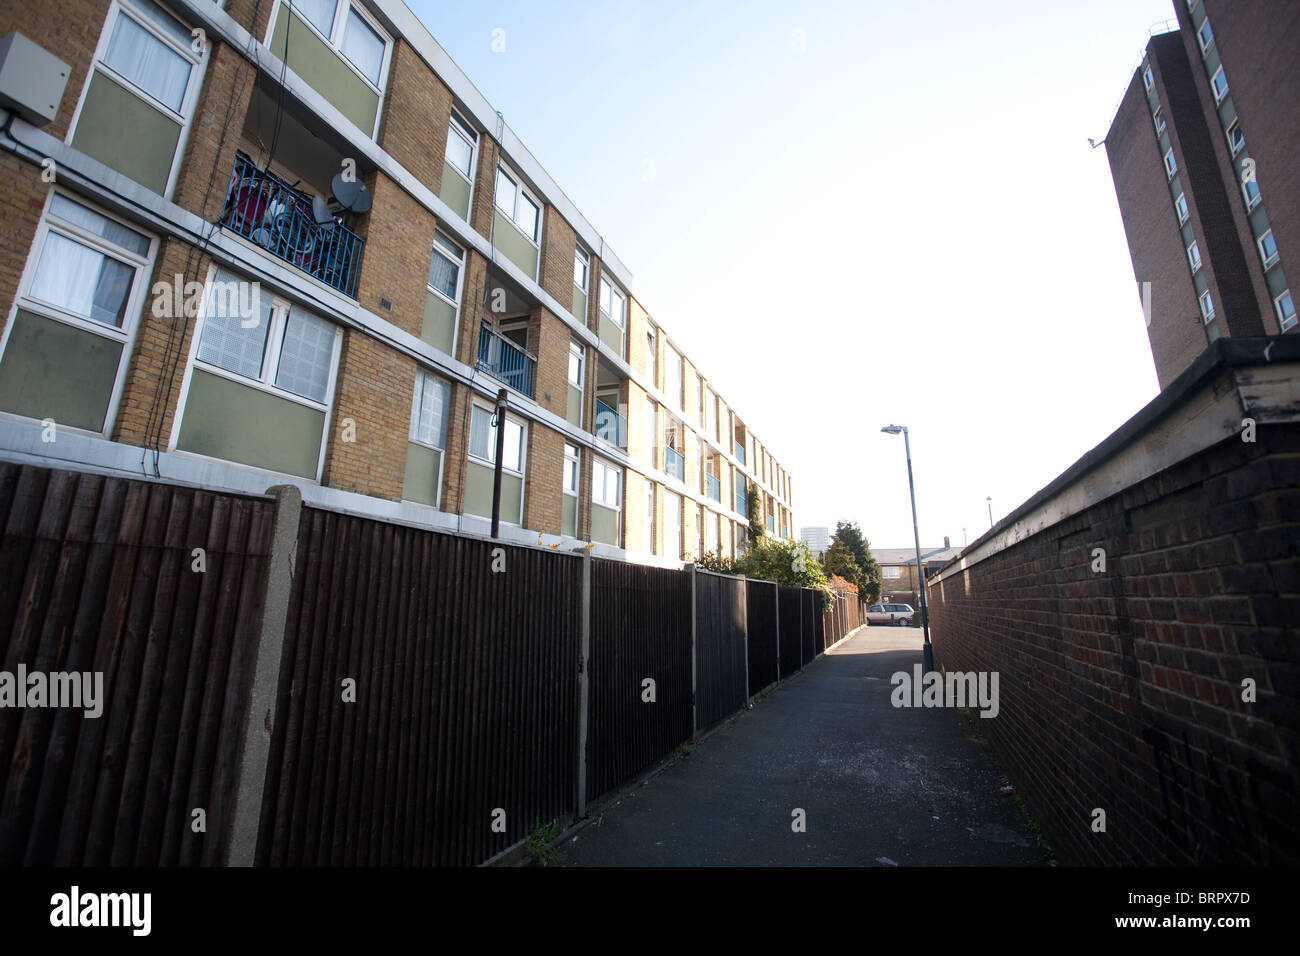 Alley way between urban council estate block of flats in Canning Town, East London. Photo:Jeff Gilbert - Stock Image